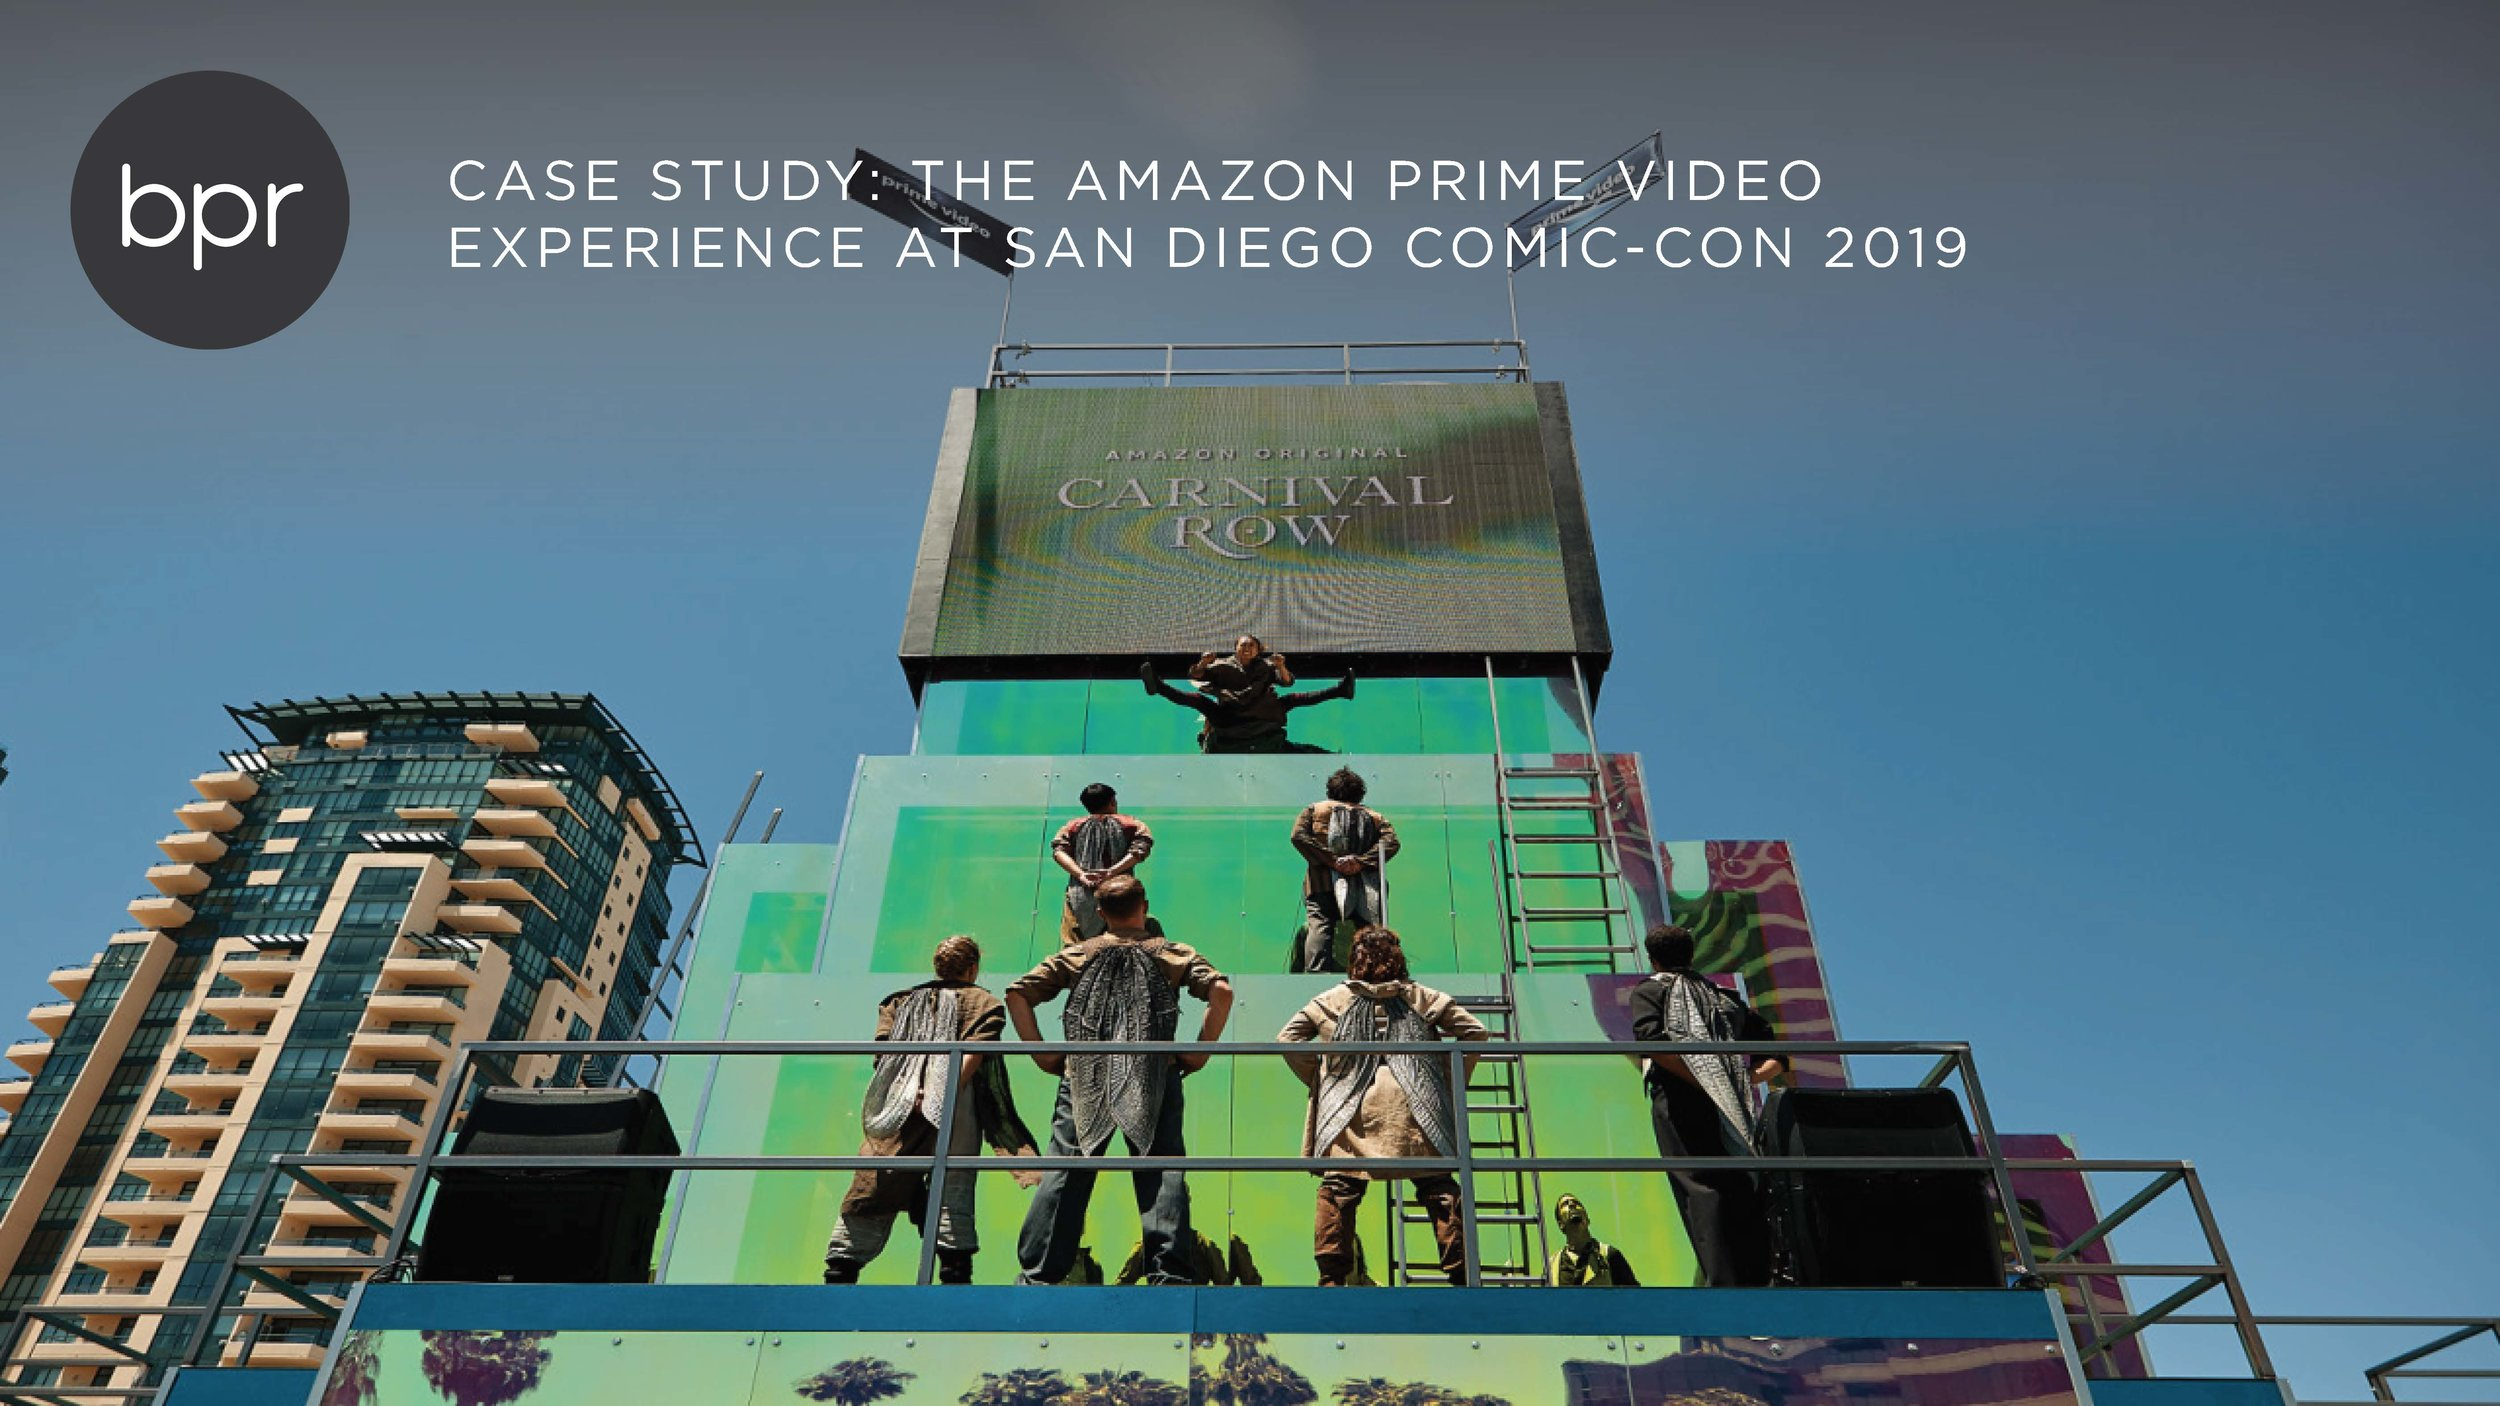 The Amazon Prime Video Experience at San Diego Comic-Con 2019 _Page_1.jpg